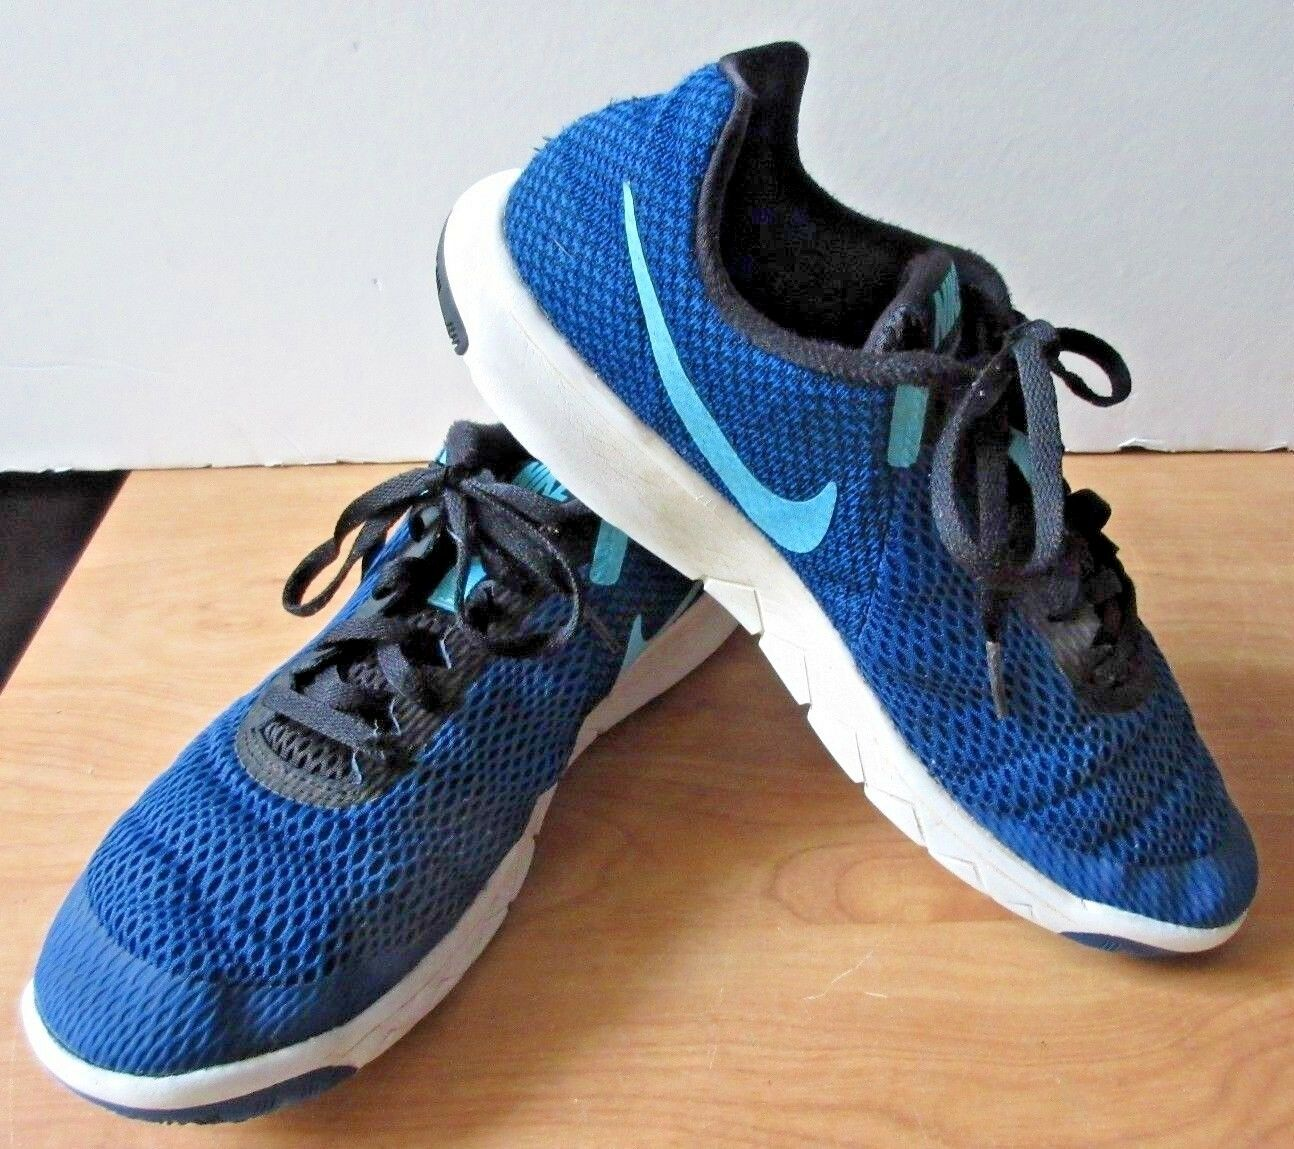 Nike Flex Experience RN RUN Men's Shoes Sport Sneakers Running 881802-404  Sz 8 The latest discount shoes for men and women